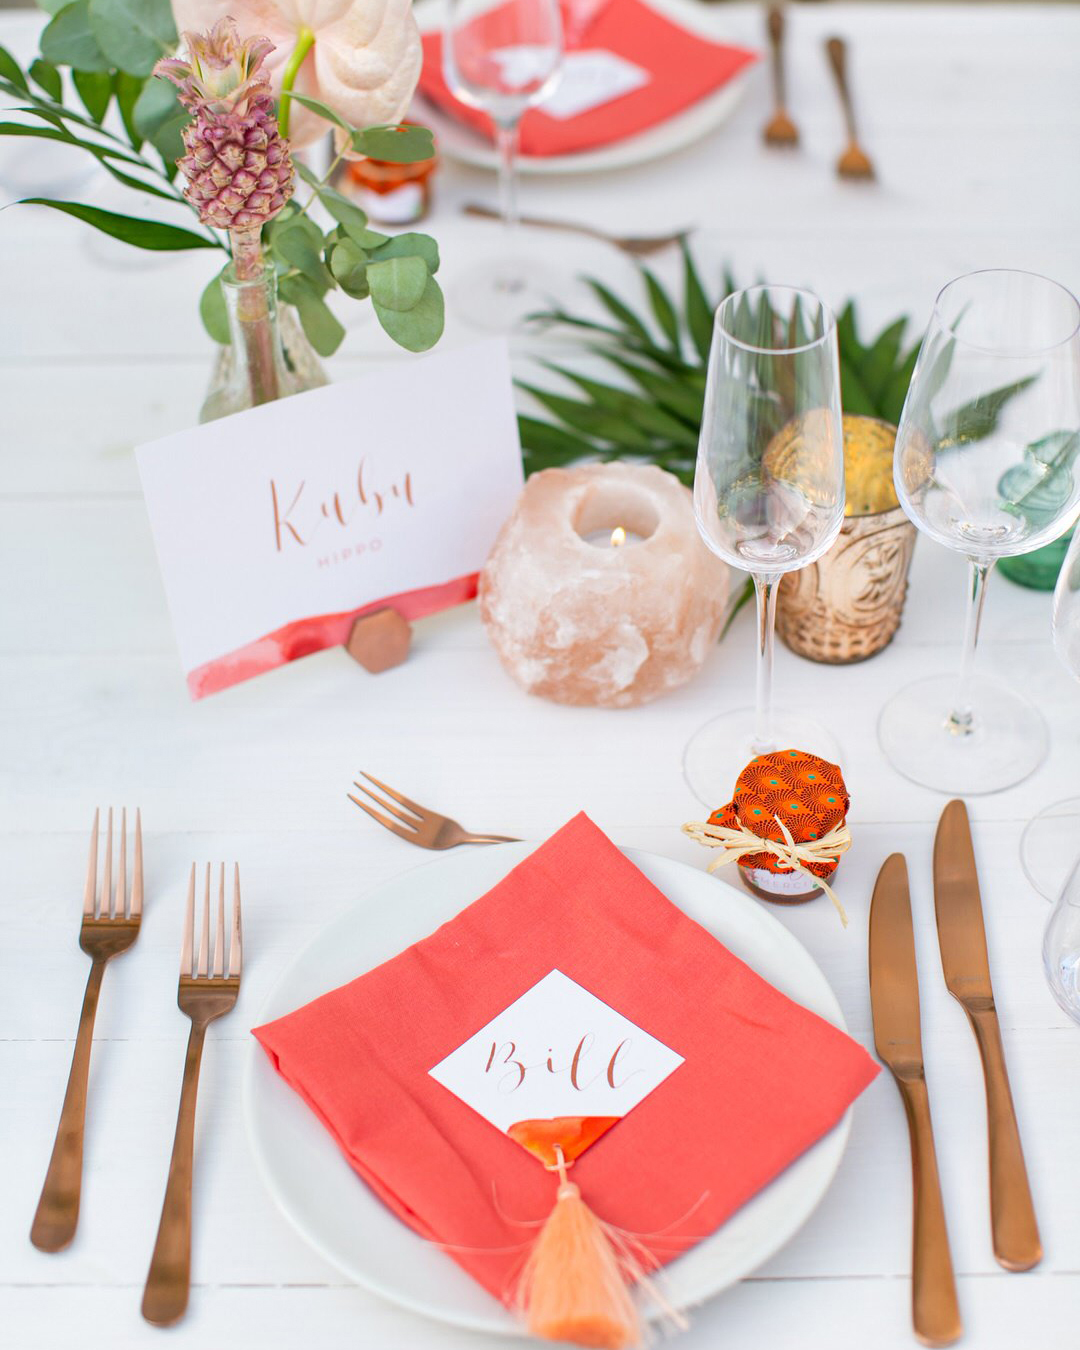 jen tim wedding reception white and coral place setting